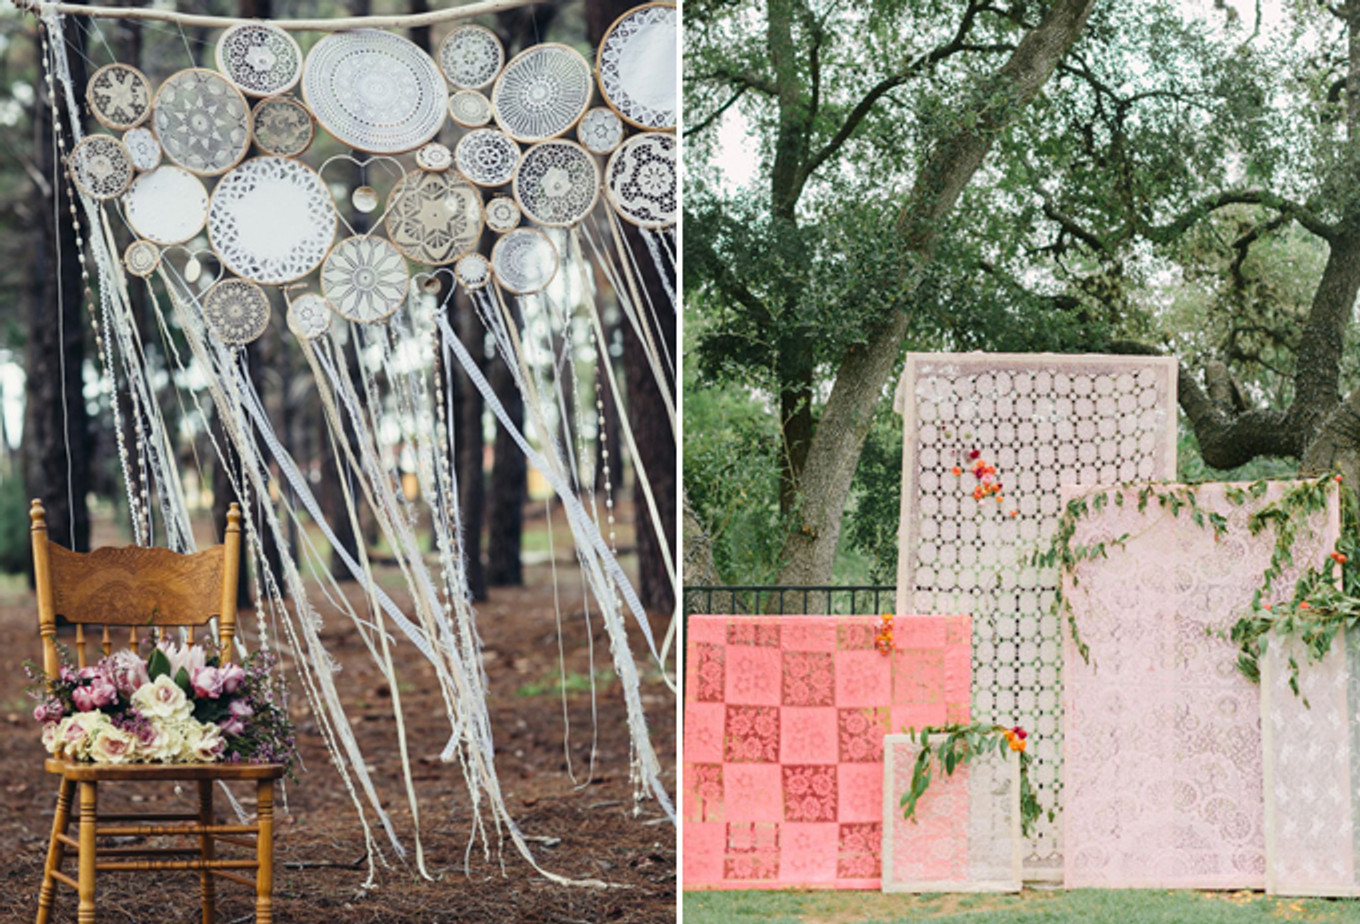 Ideas For Wedding Photo Booth: 12 Creative And Affordable DIY Wedding Photo Booth Ideas